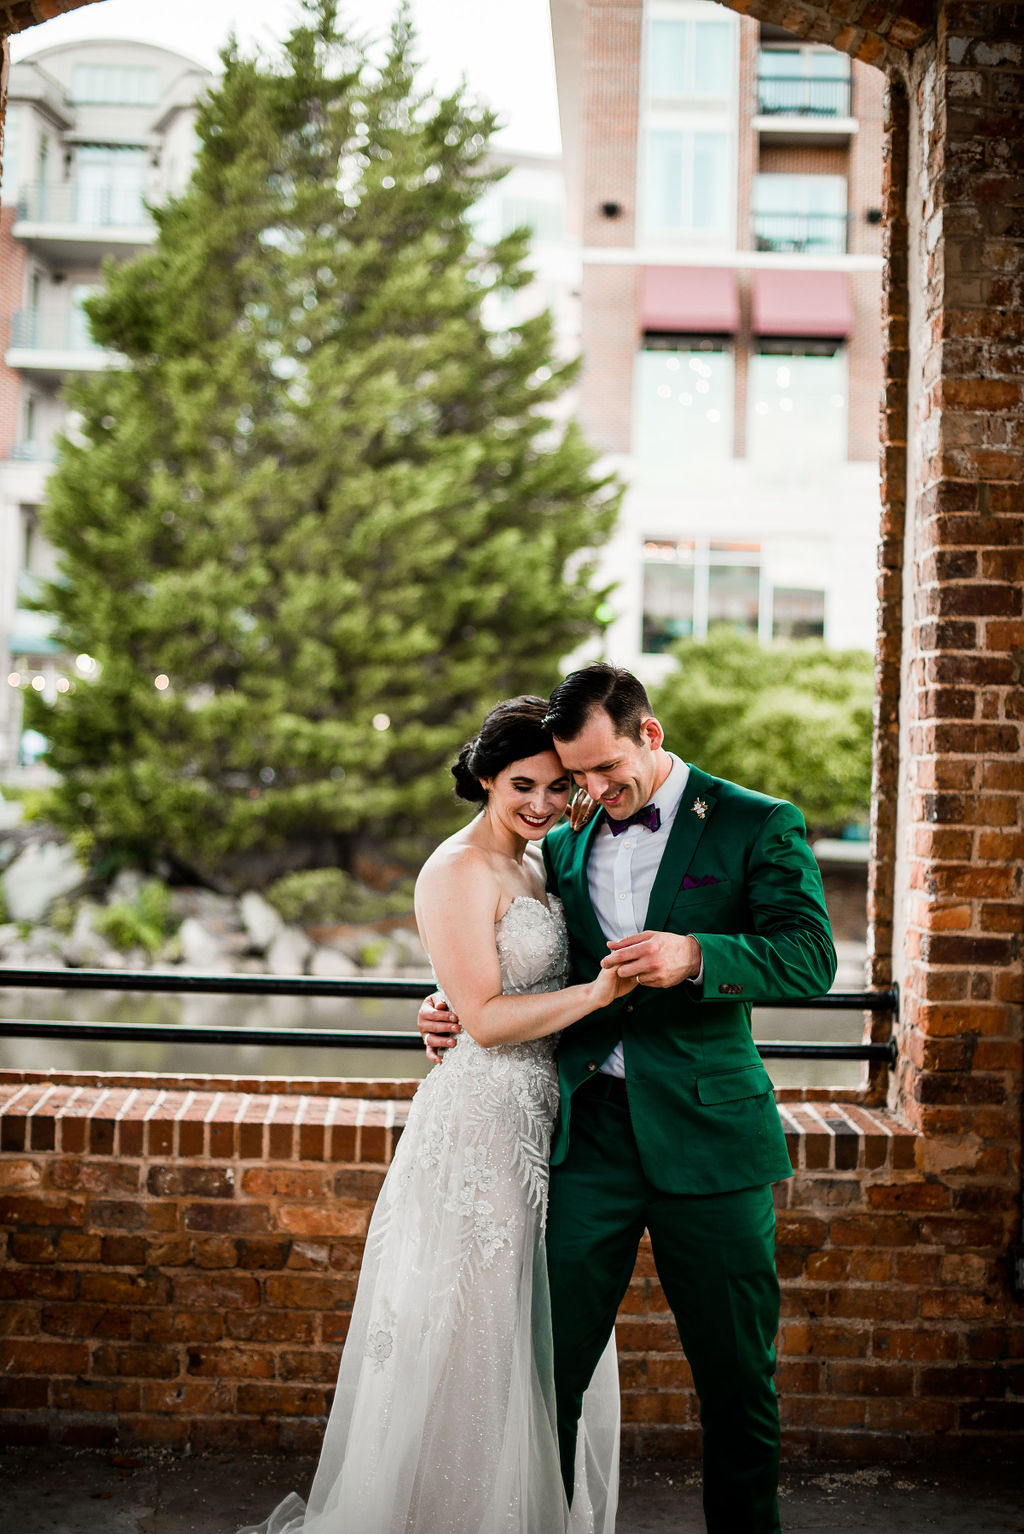 Downtown_Greenville_Wedding_Larkins-555.jpg